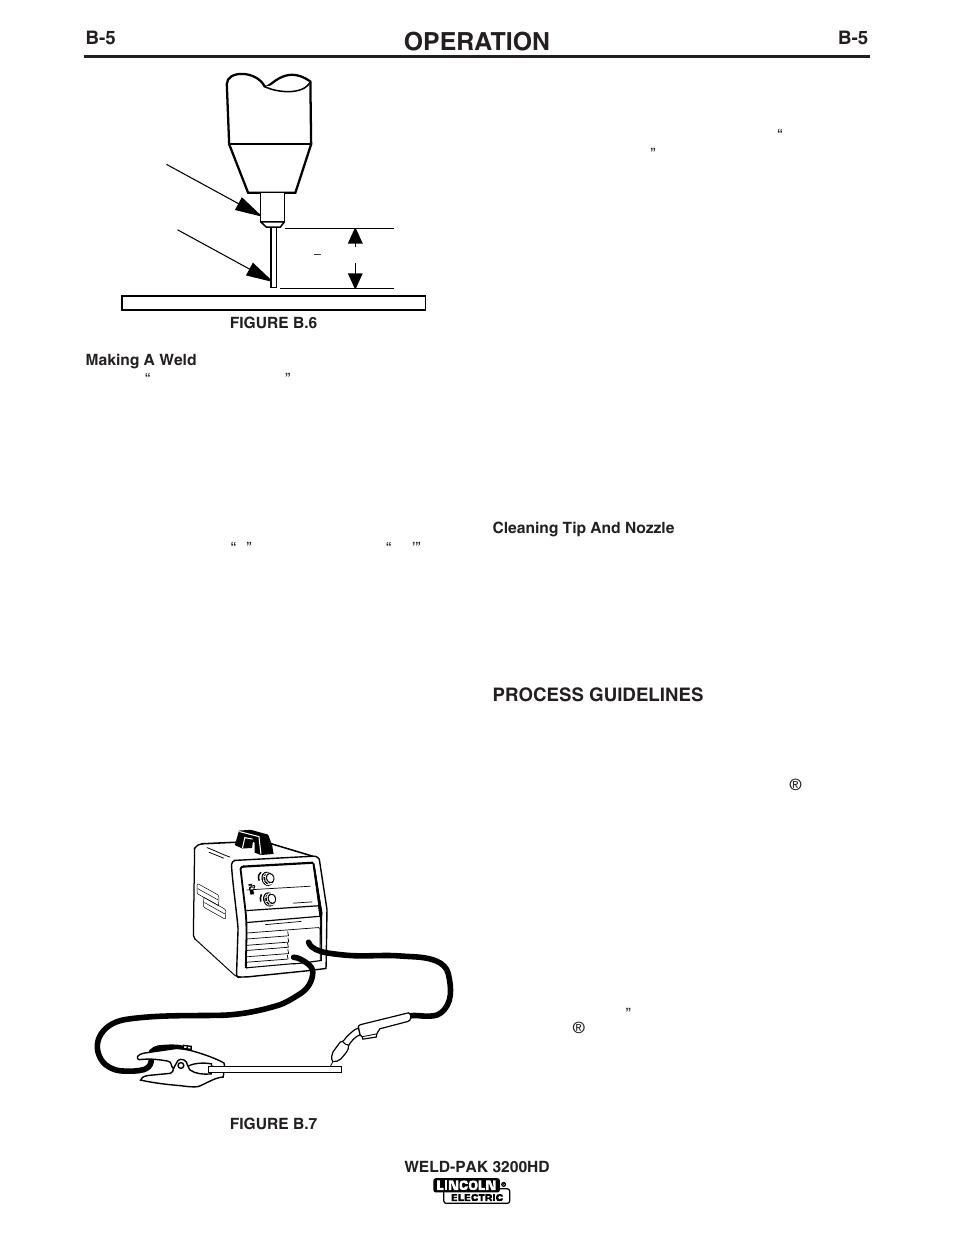 Operation | Lincoln Electric WELD-PAK 3200HD User Manual | Page 19 / 48